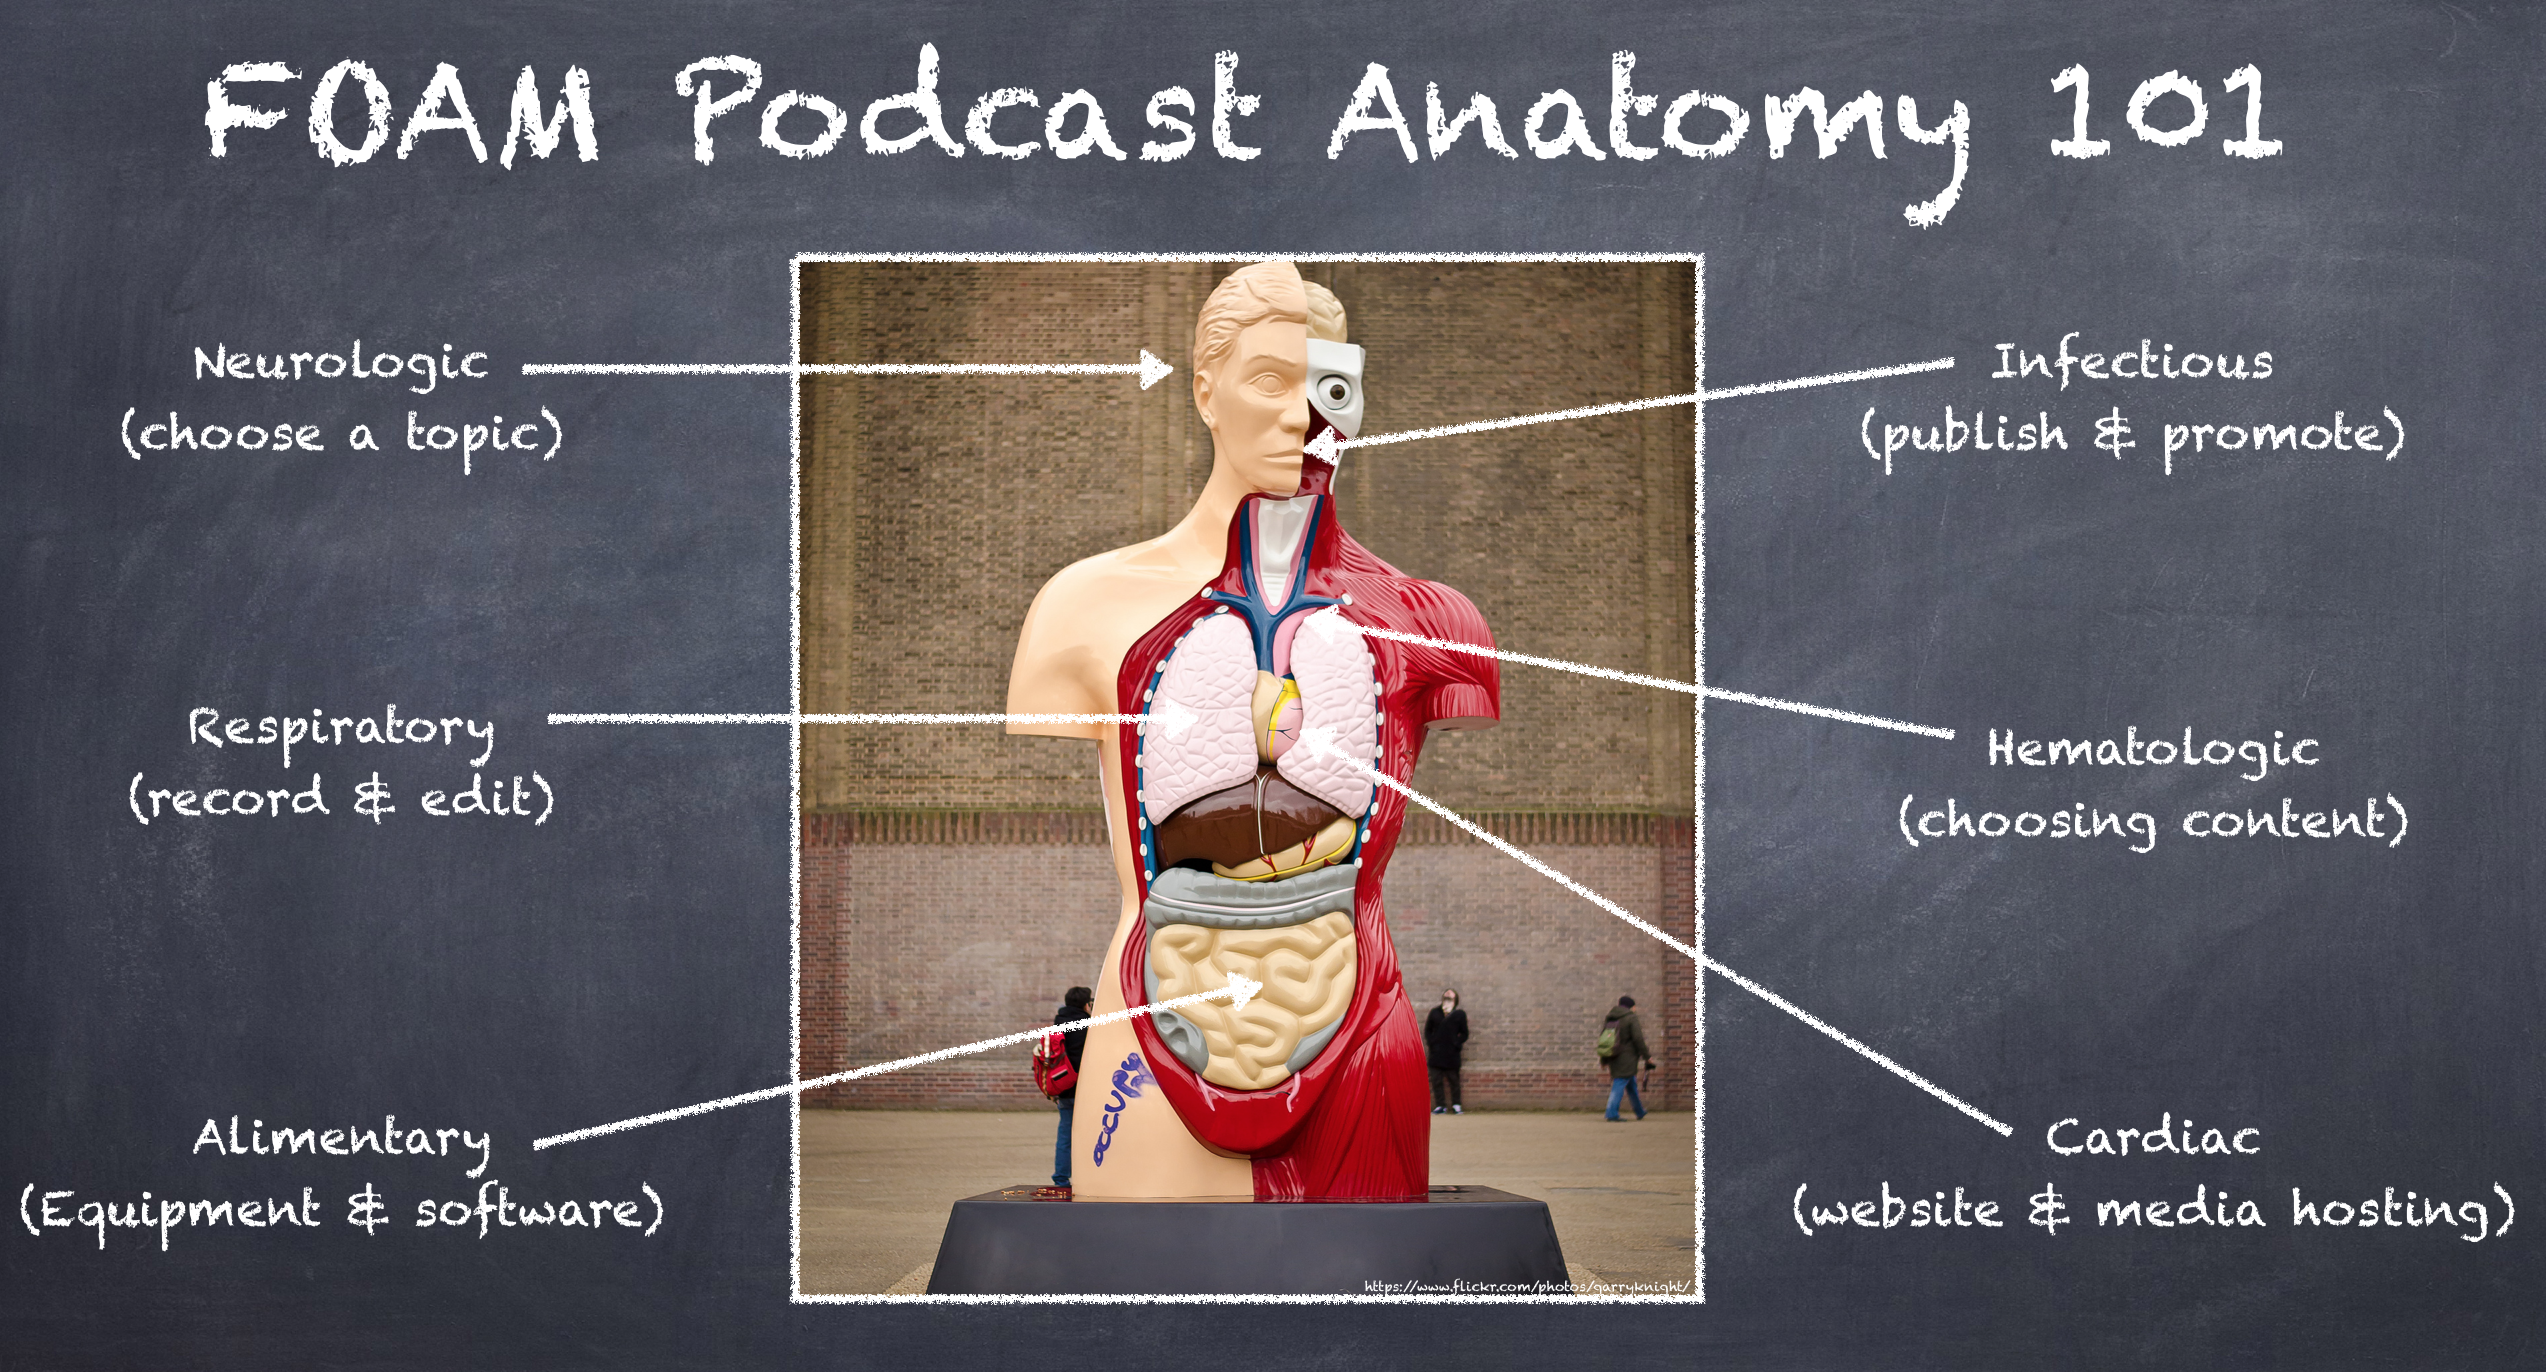 5: Flatten the learning curve to starting a medical podcast